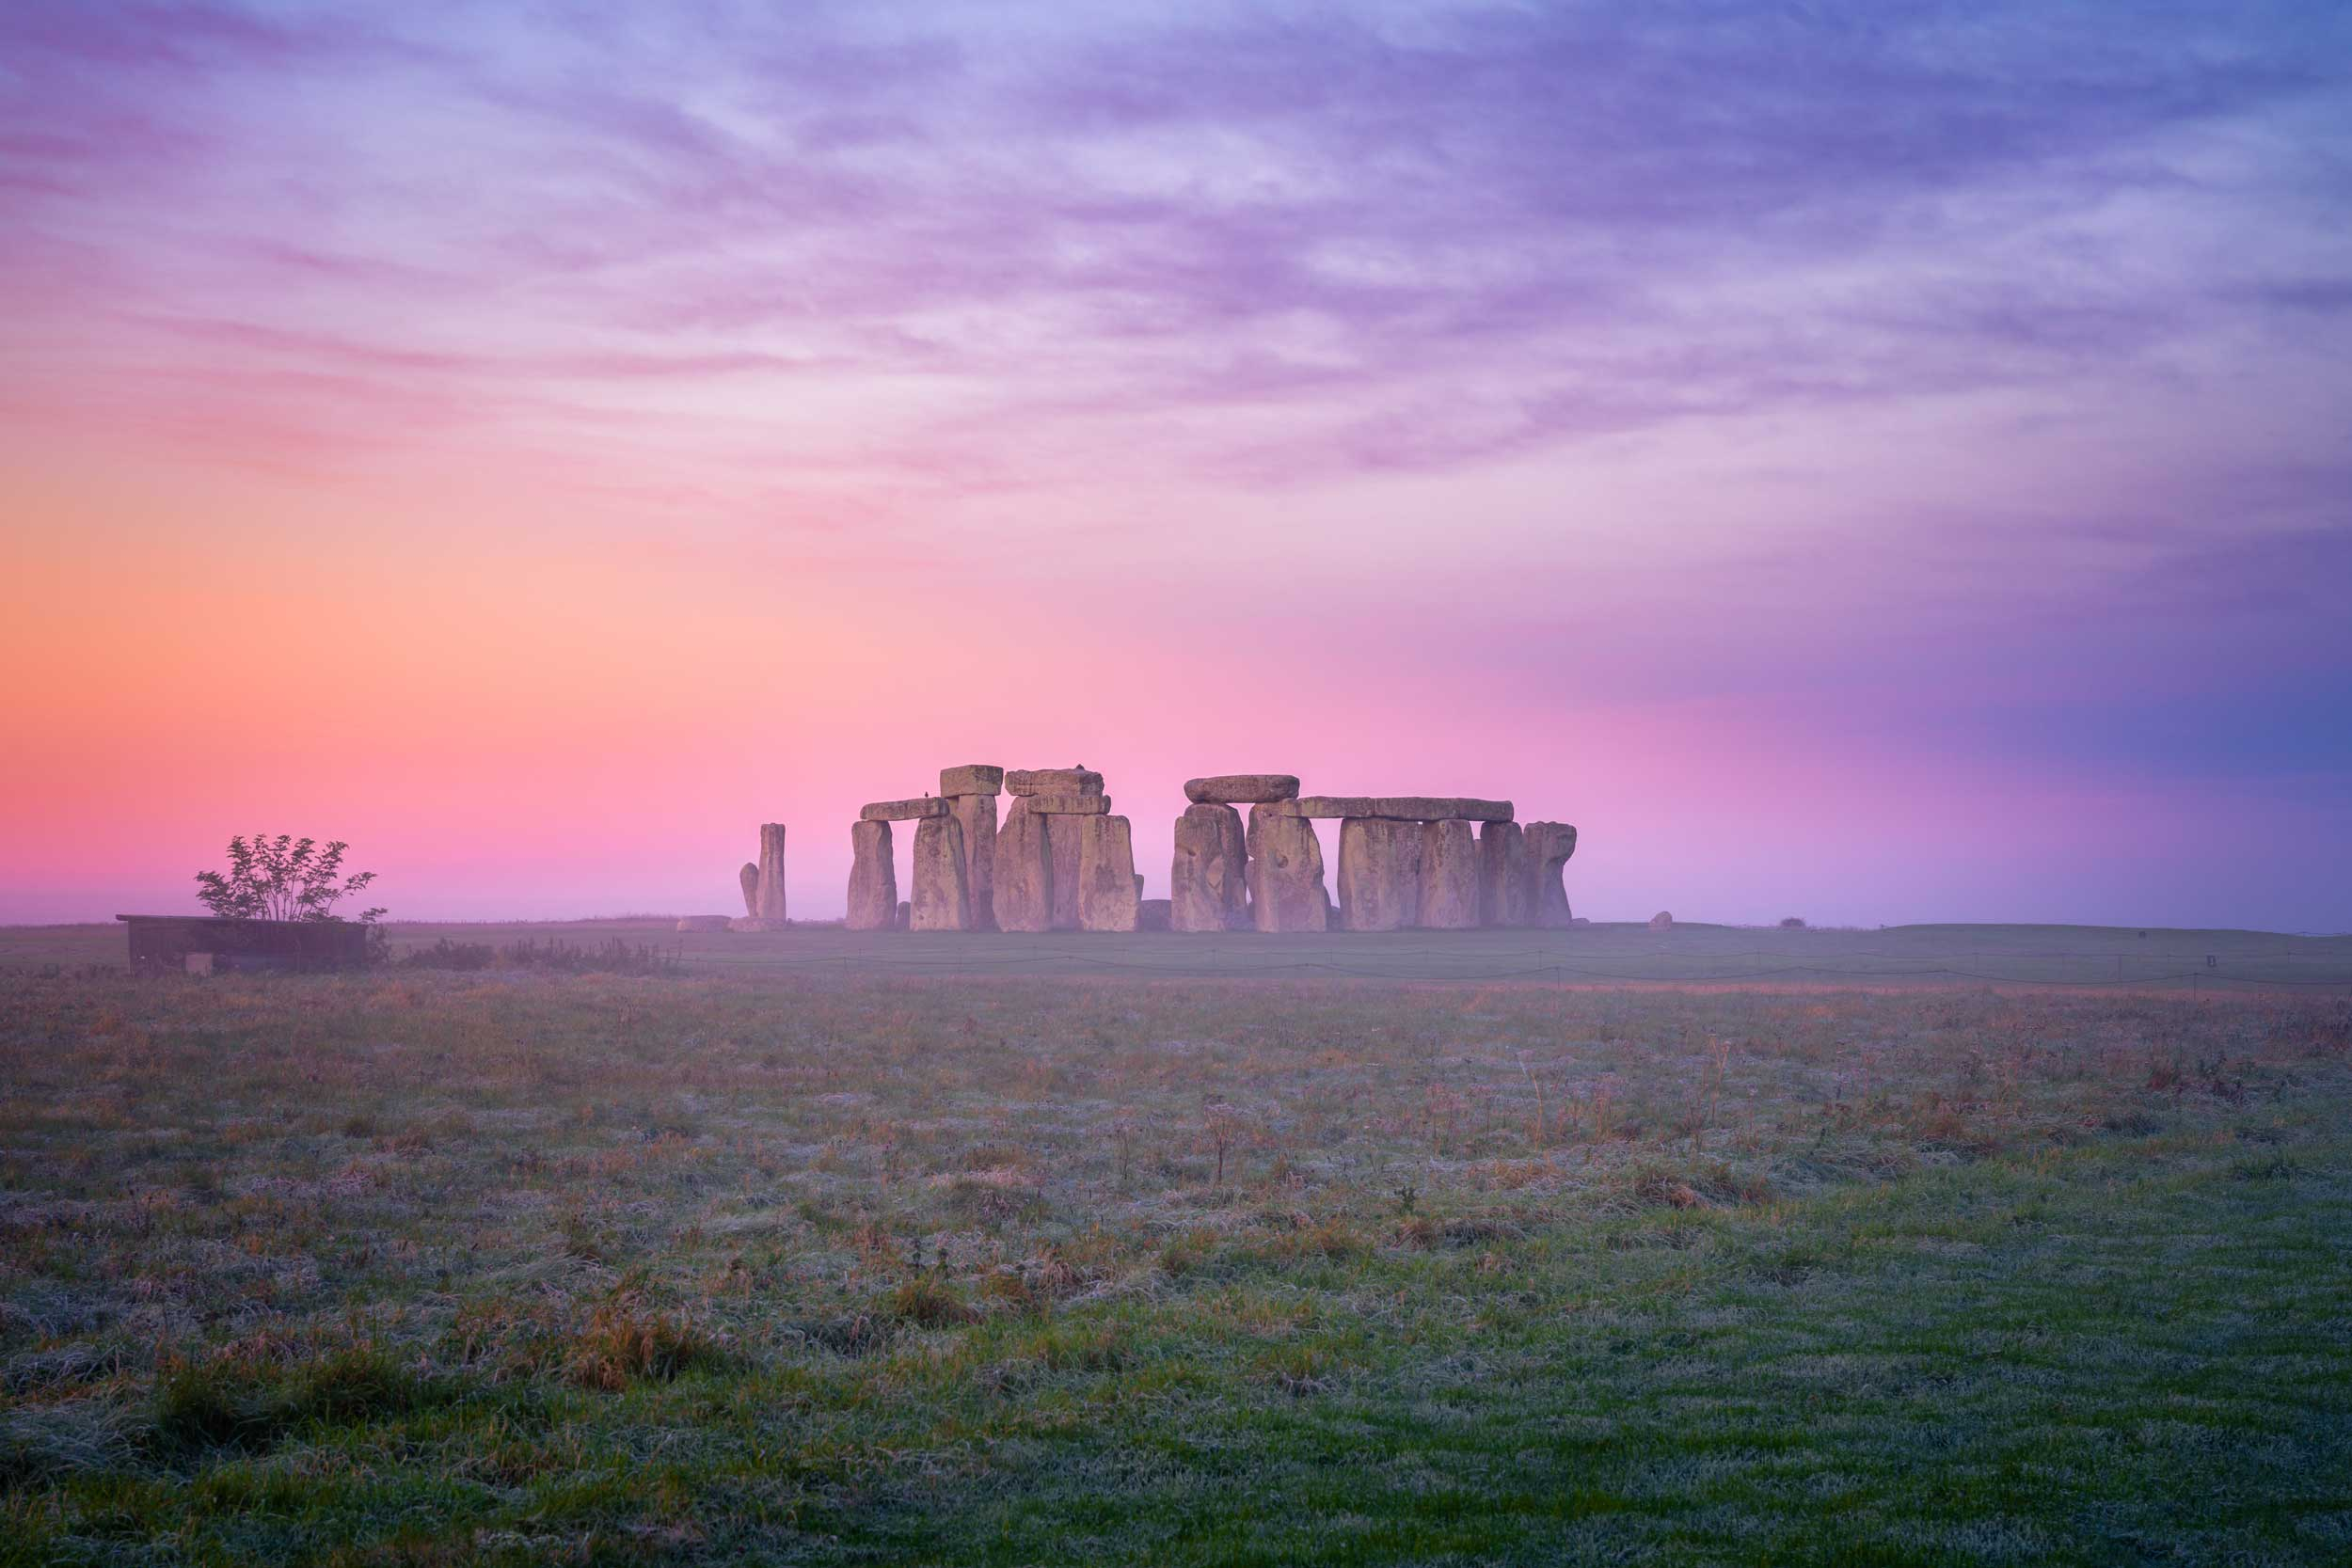 Visiting Stonehenge: The Winter Solstice 2019